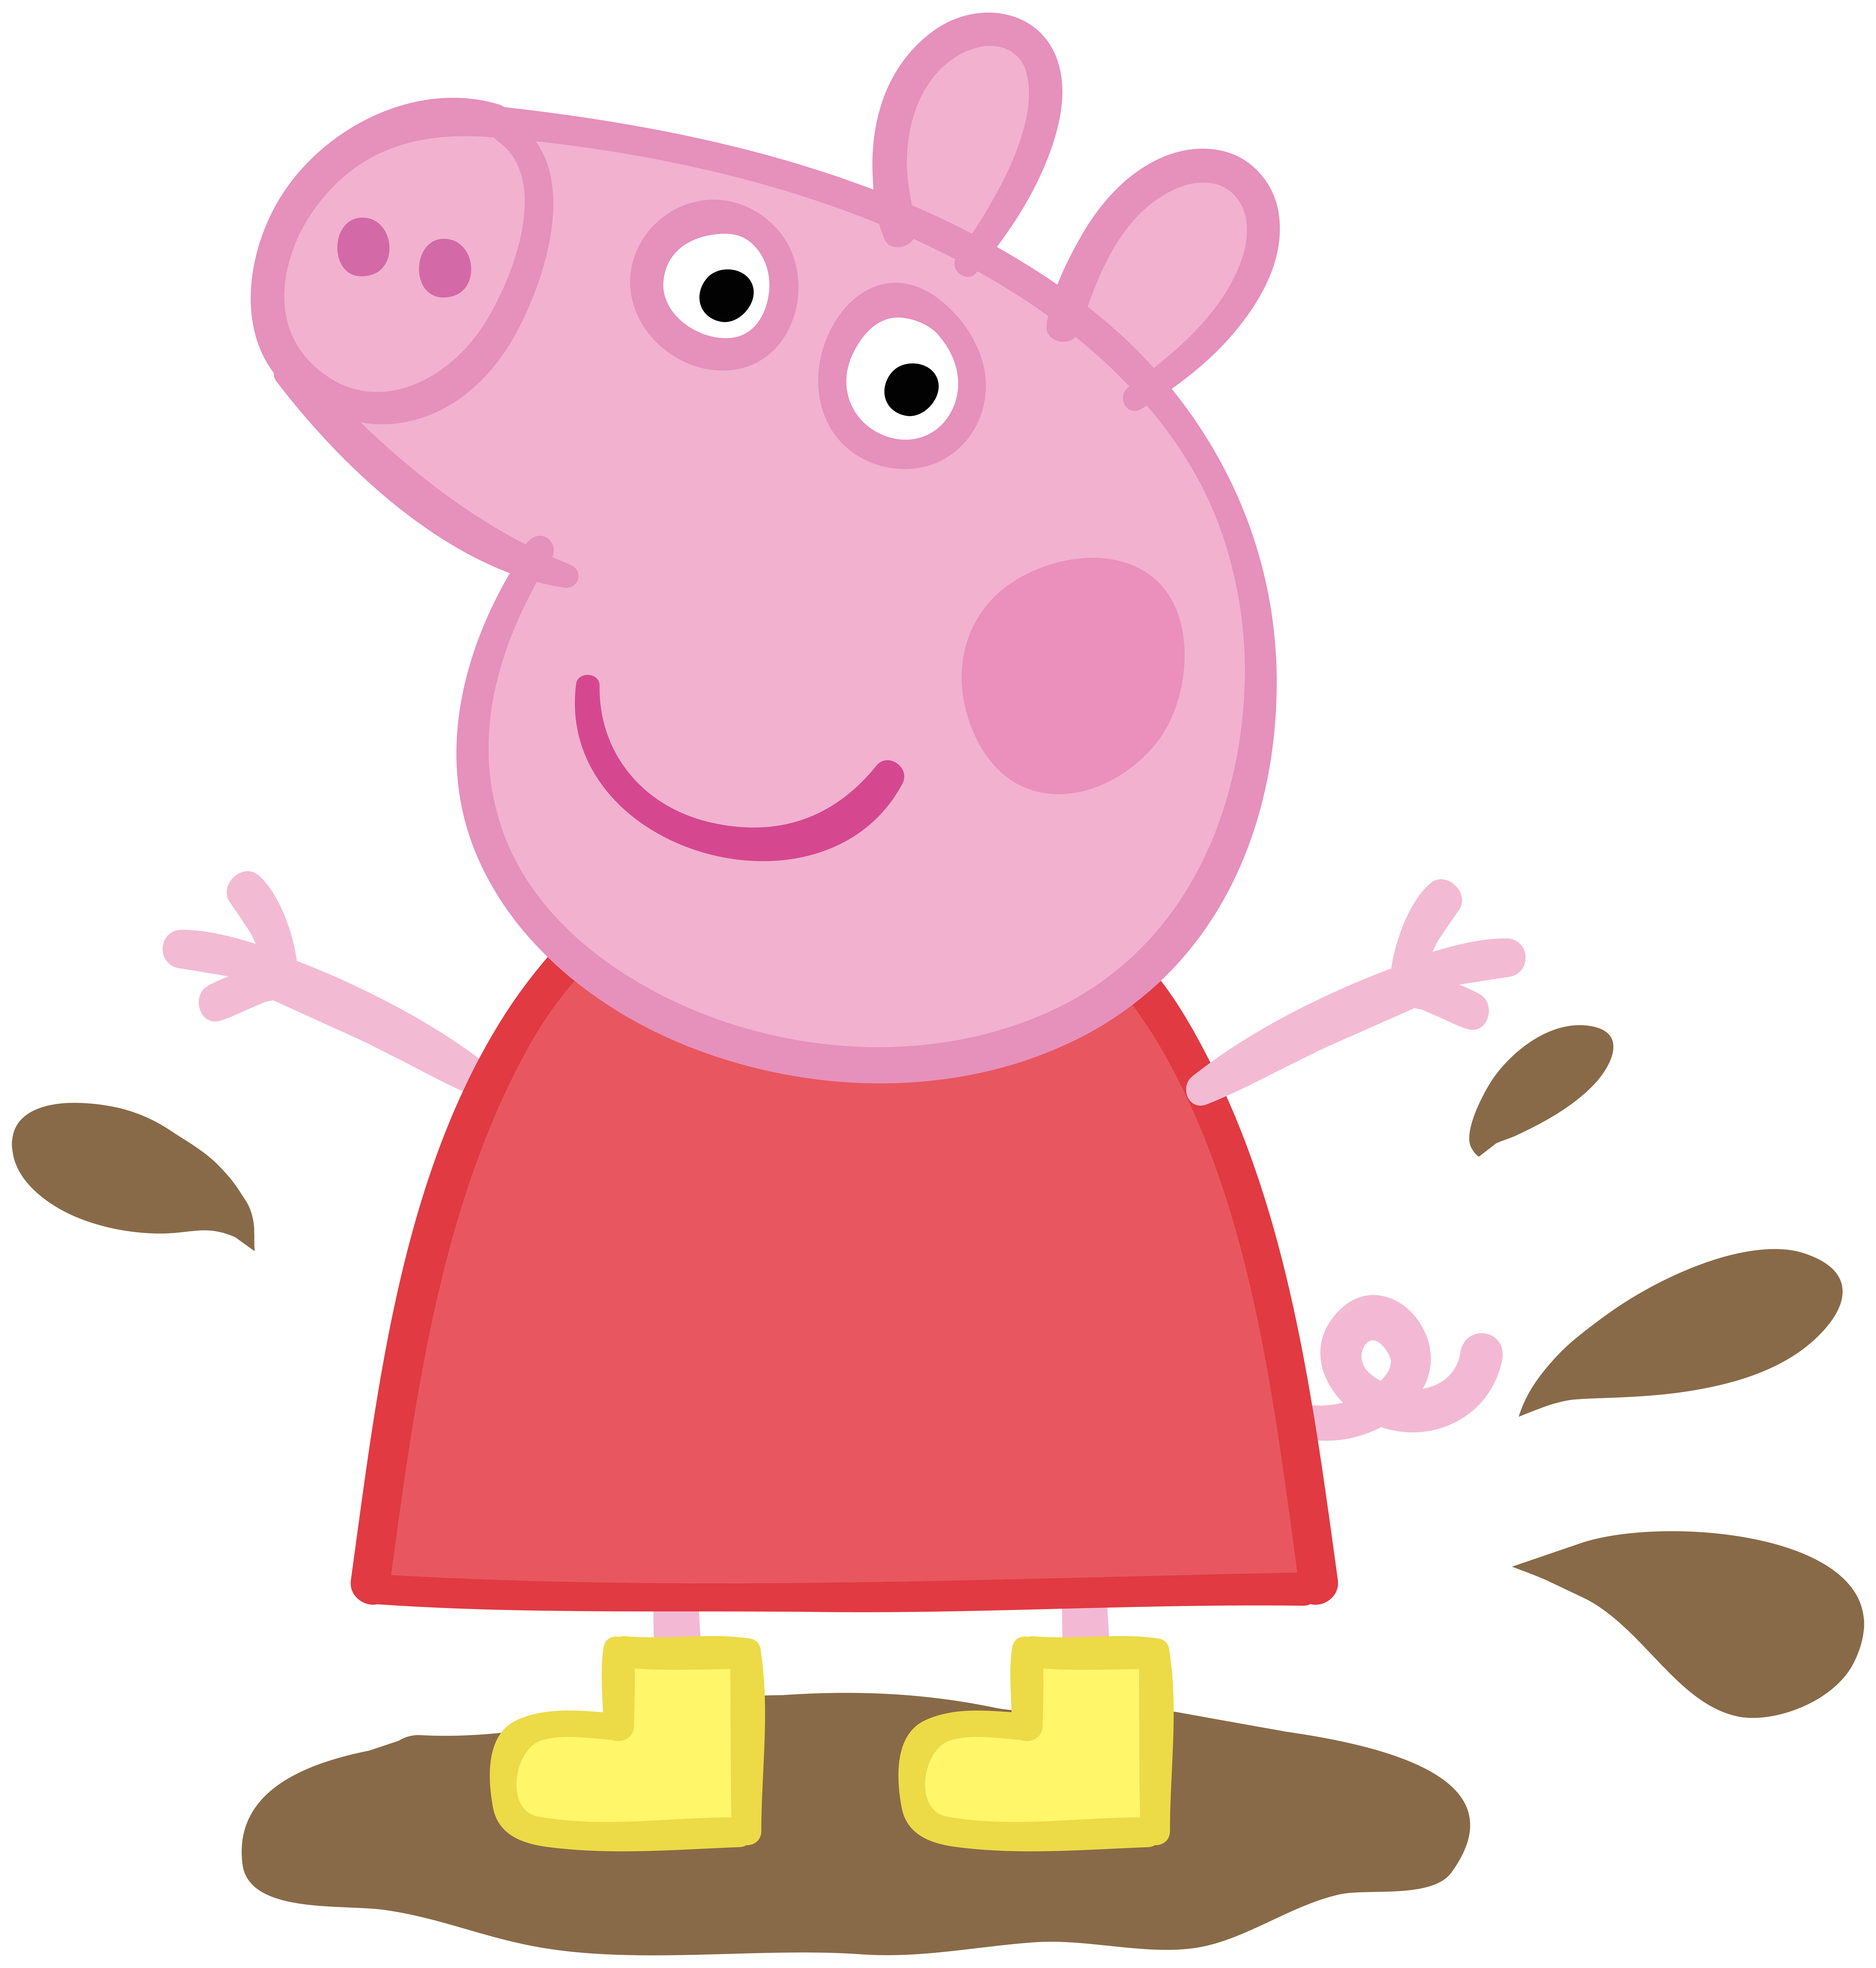 Pepa clipart graphic royalty free stock Peppa Pig in Muddy Puddle Transparent PNG Image | Gallery ... graphic royalty free stock